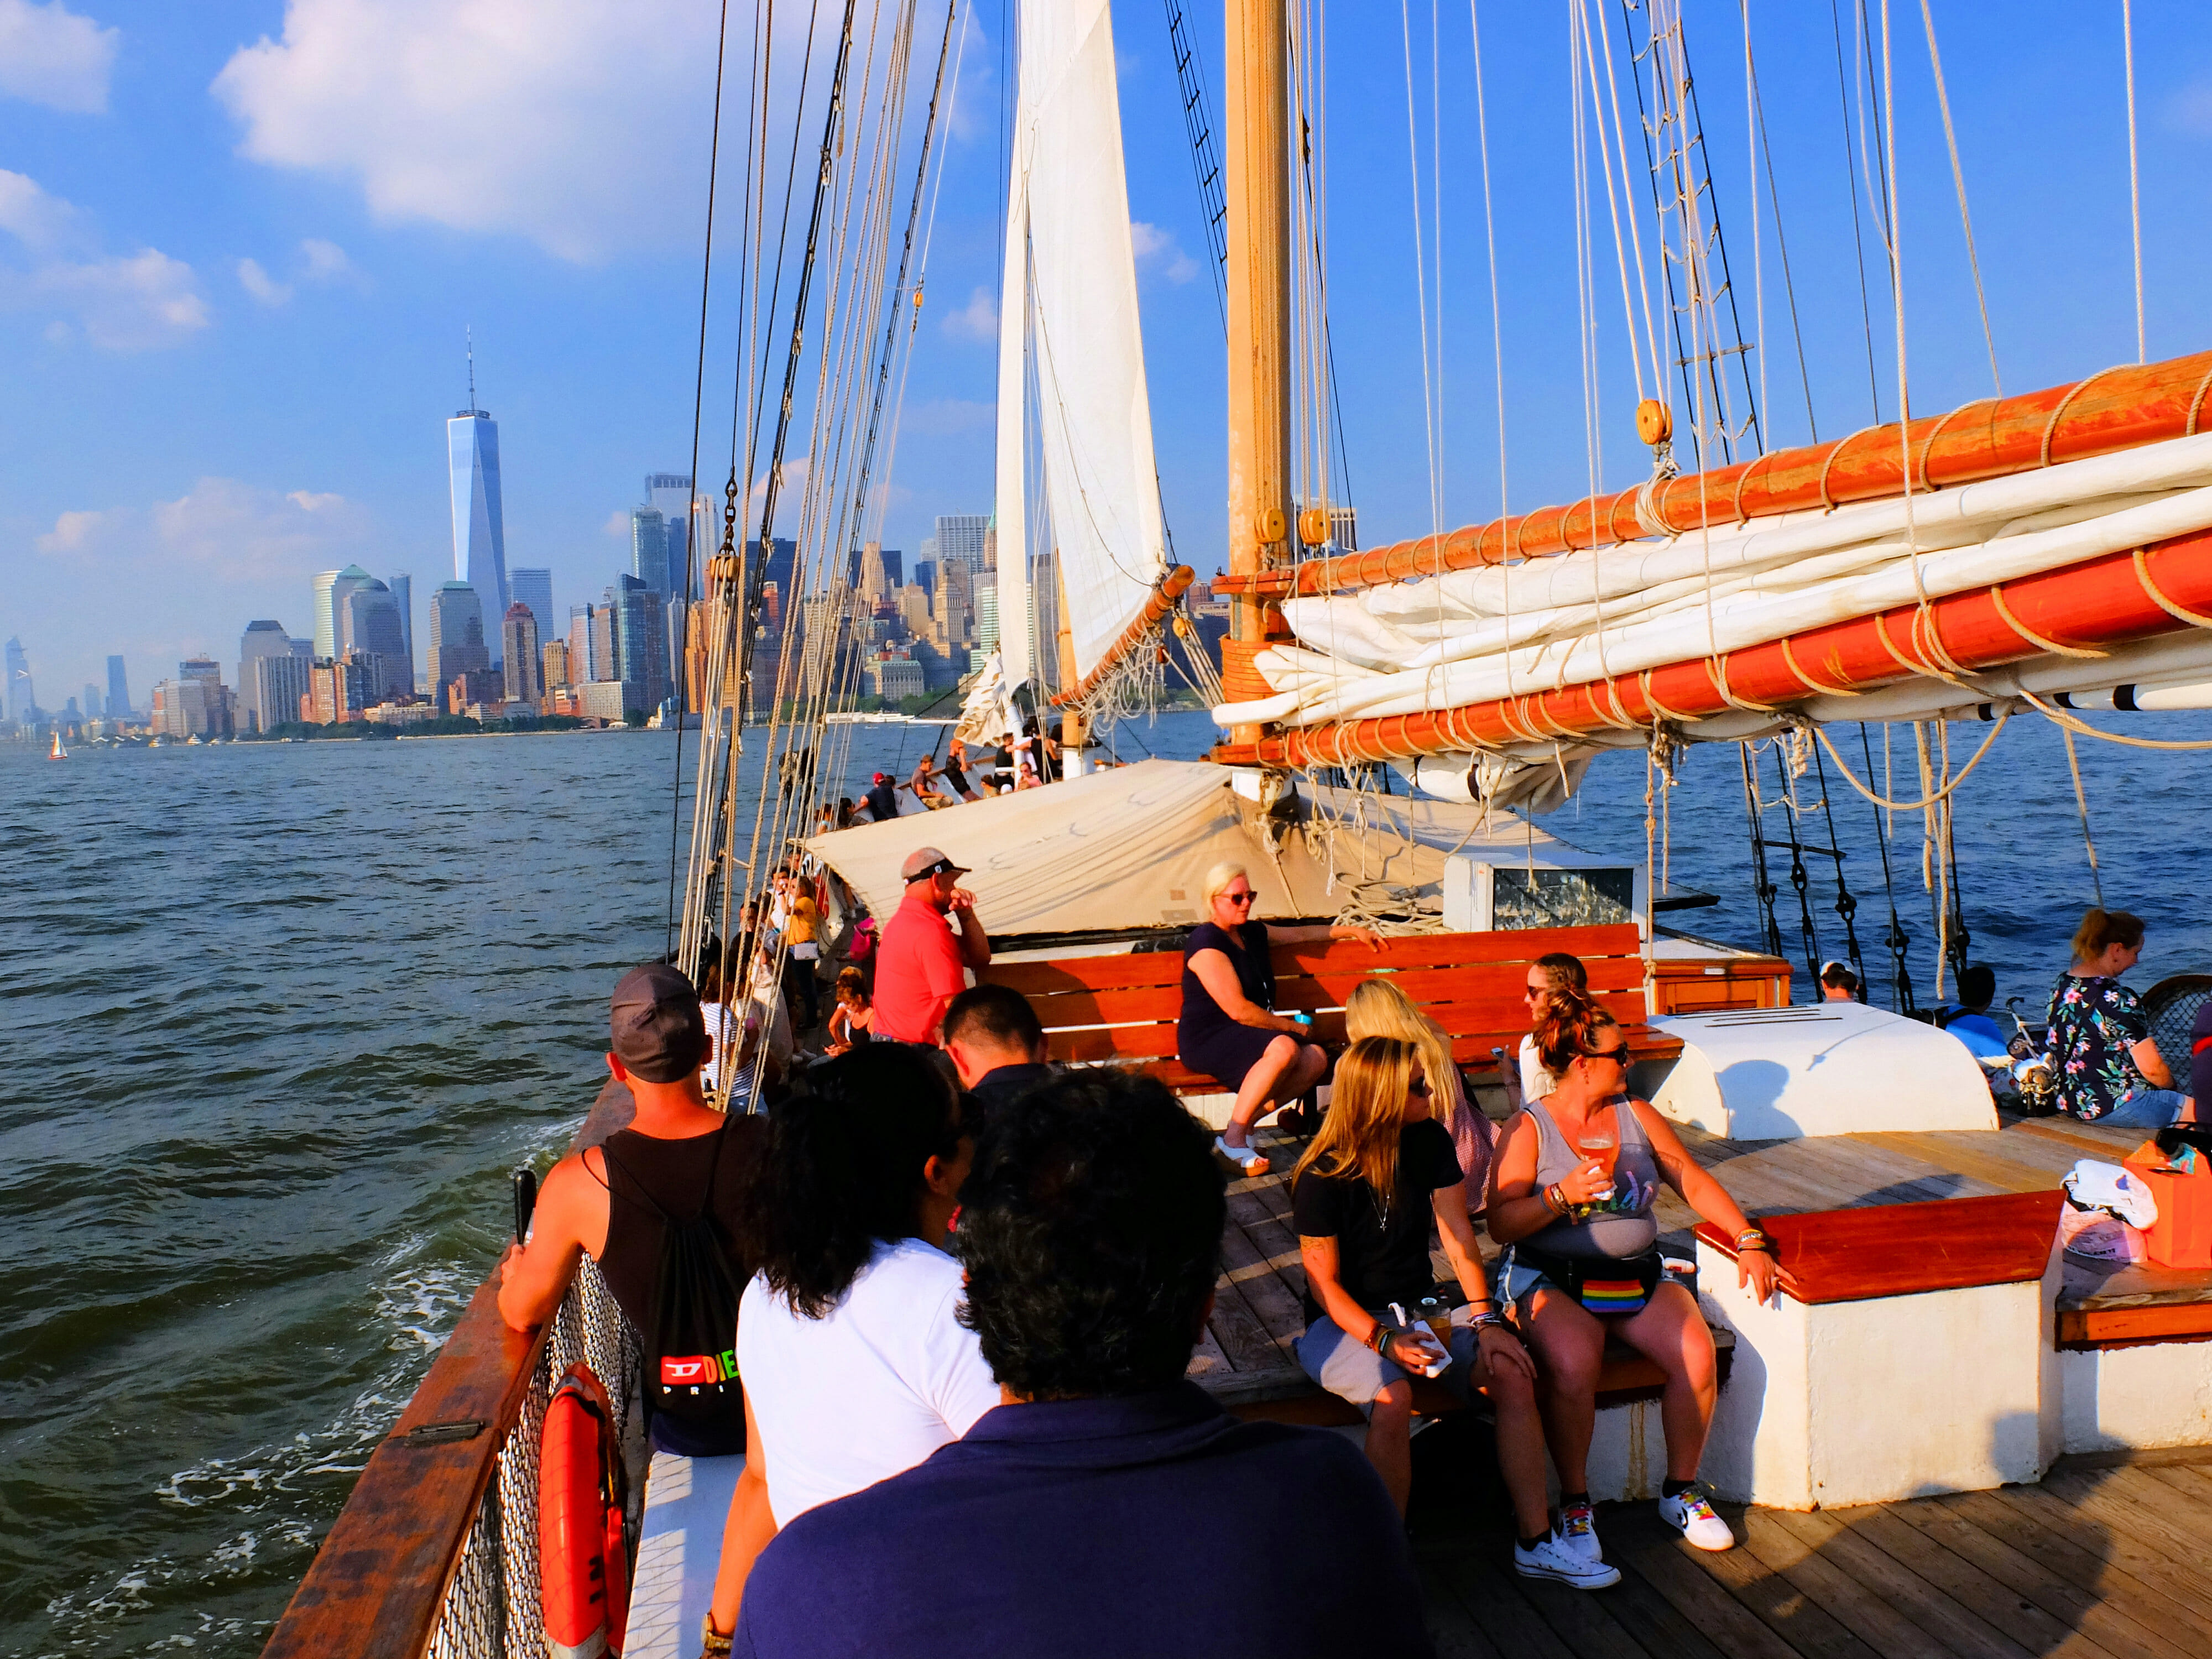 Sailboat New York City – High Quality Wallpaper